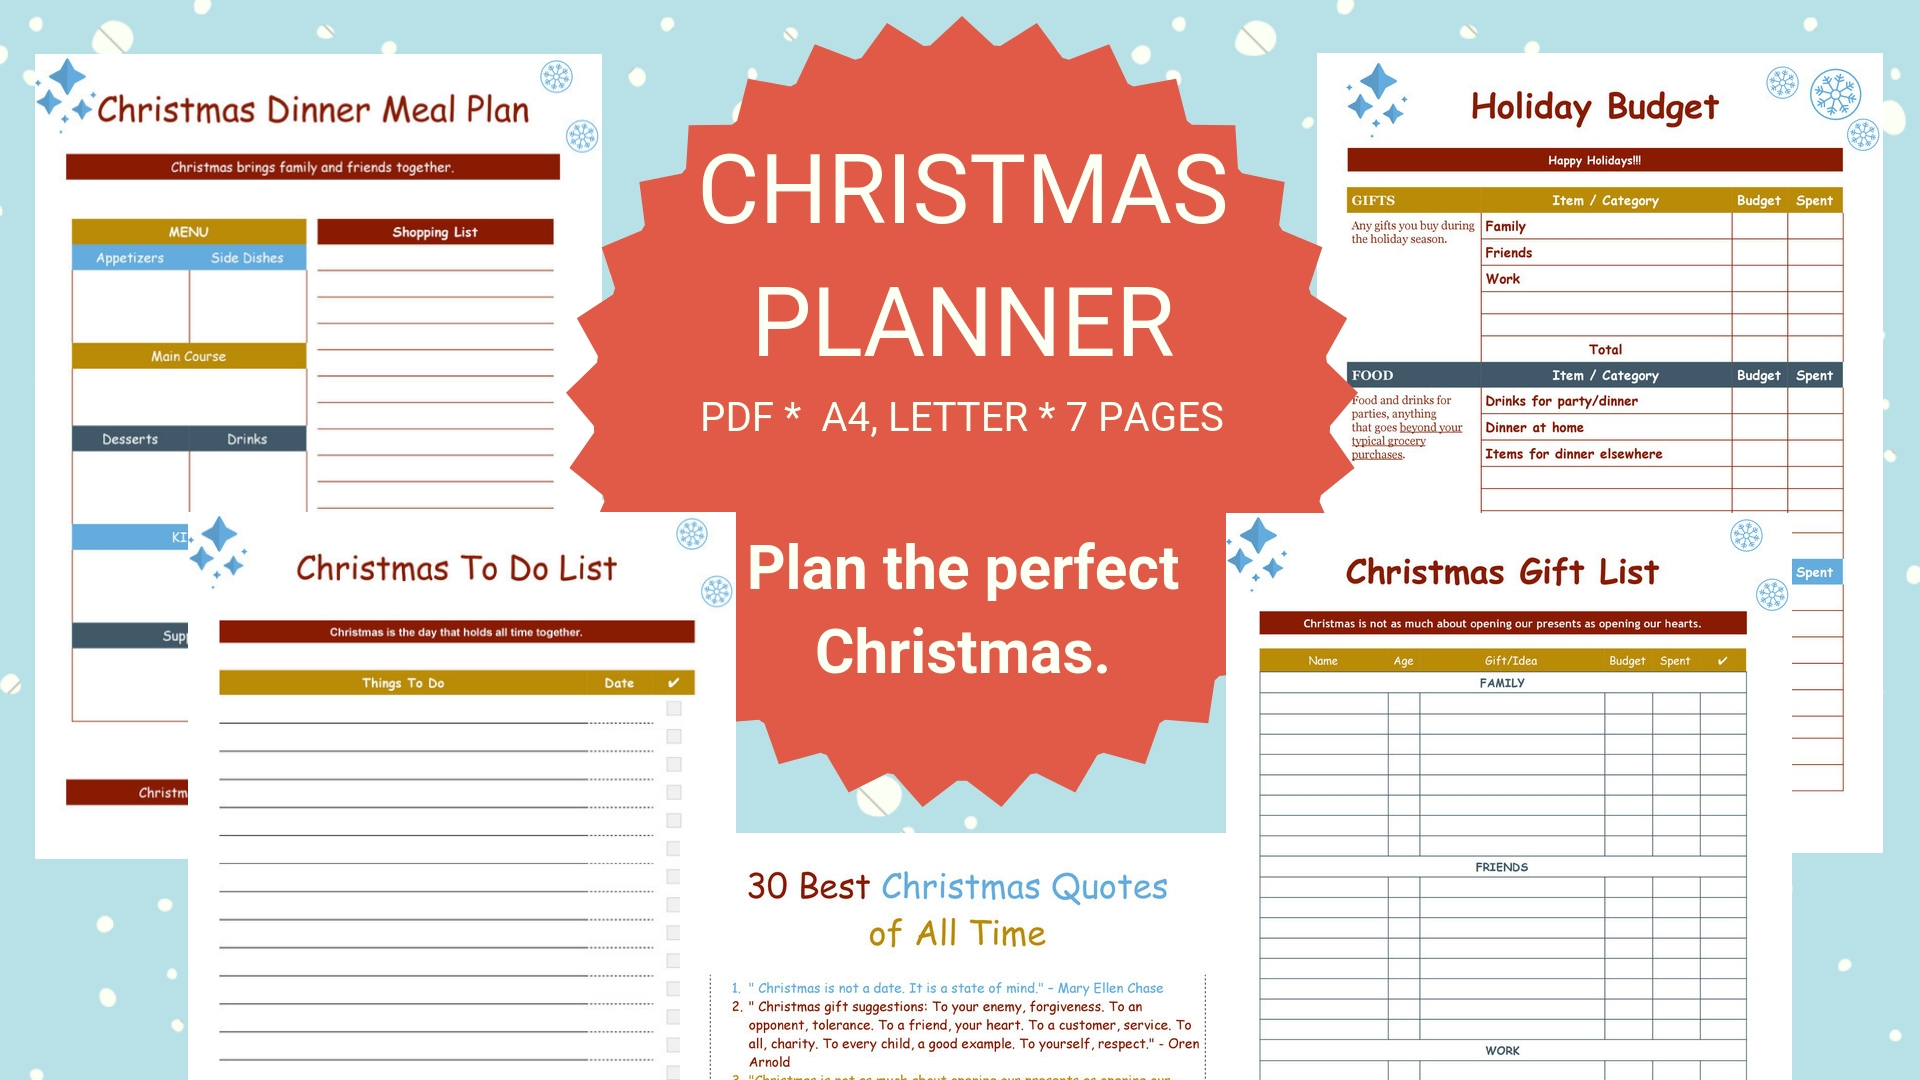 Christmas Planning A Stress Free And Organized Holiday